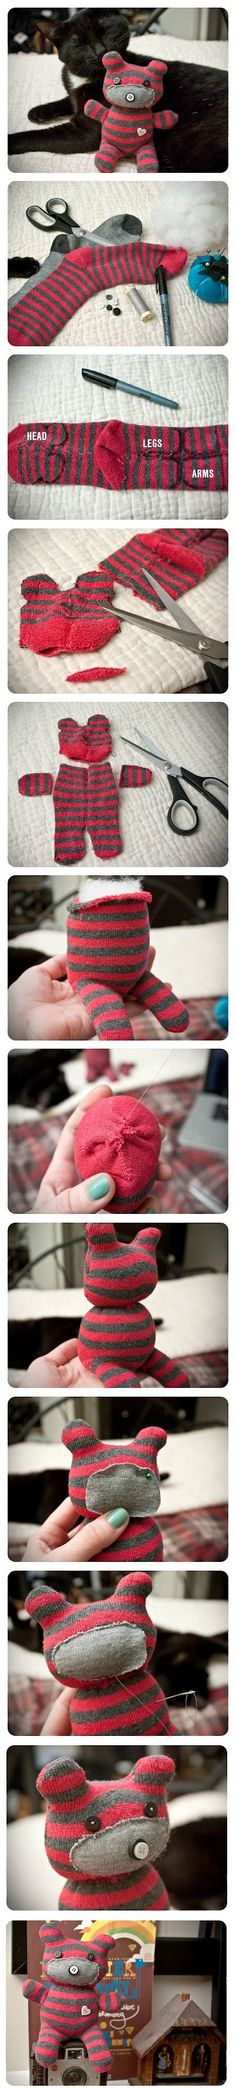 Çoraptan Oyuncak Modelleri ve Yapımı beautiful cutest funny wild basteln lustig zeichnen Sock Crafts, Cute Crafts, Crafts To Do, Fabric Crafts, Sewing Crafts, Sewing Projects, Crafts For Kids, Craft Projects, Craft Ideas